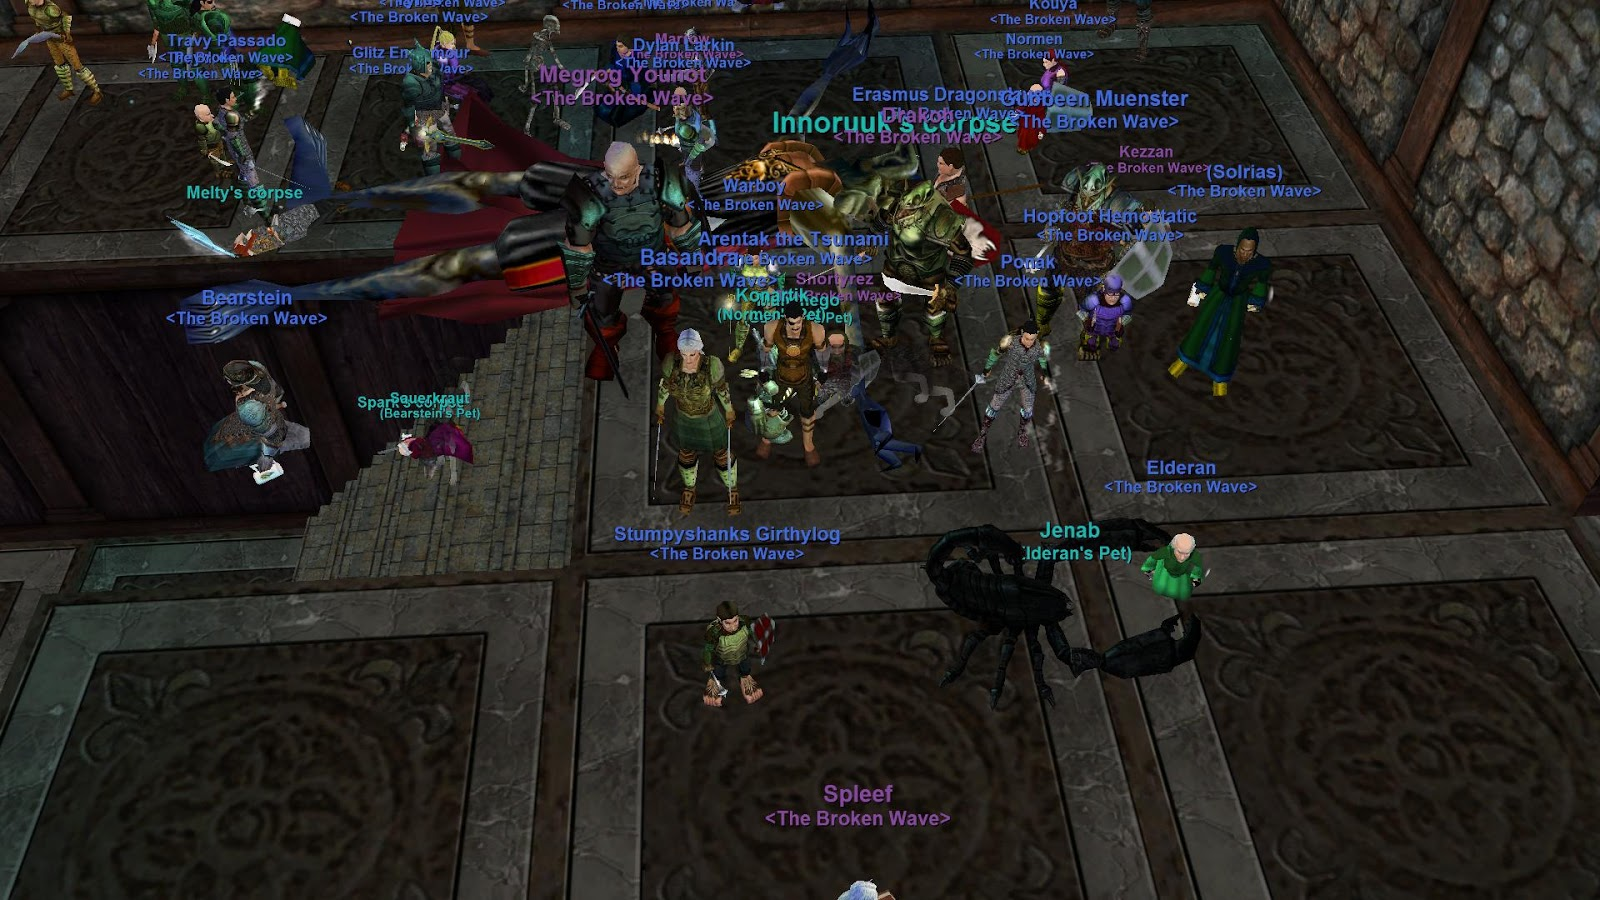 Arentak's Everquest Blog: Innoruuk down!